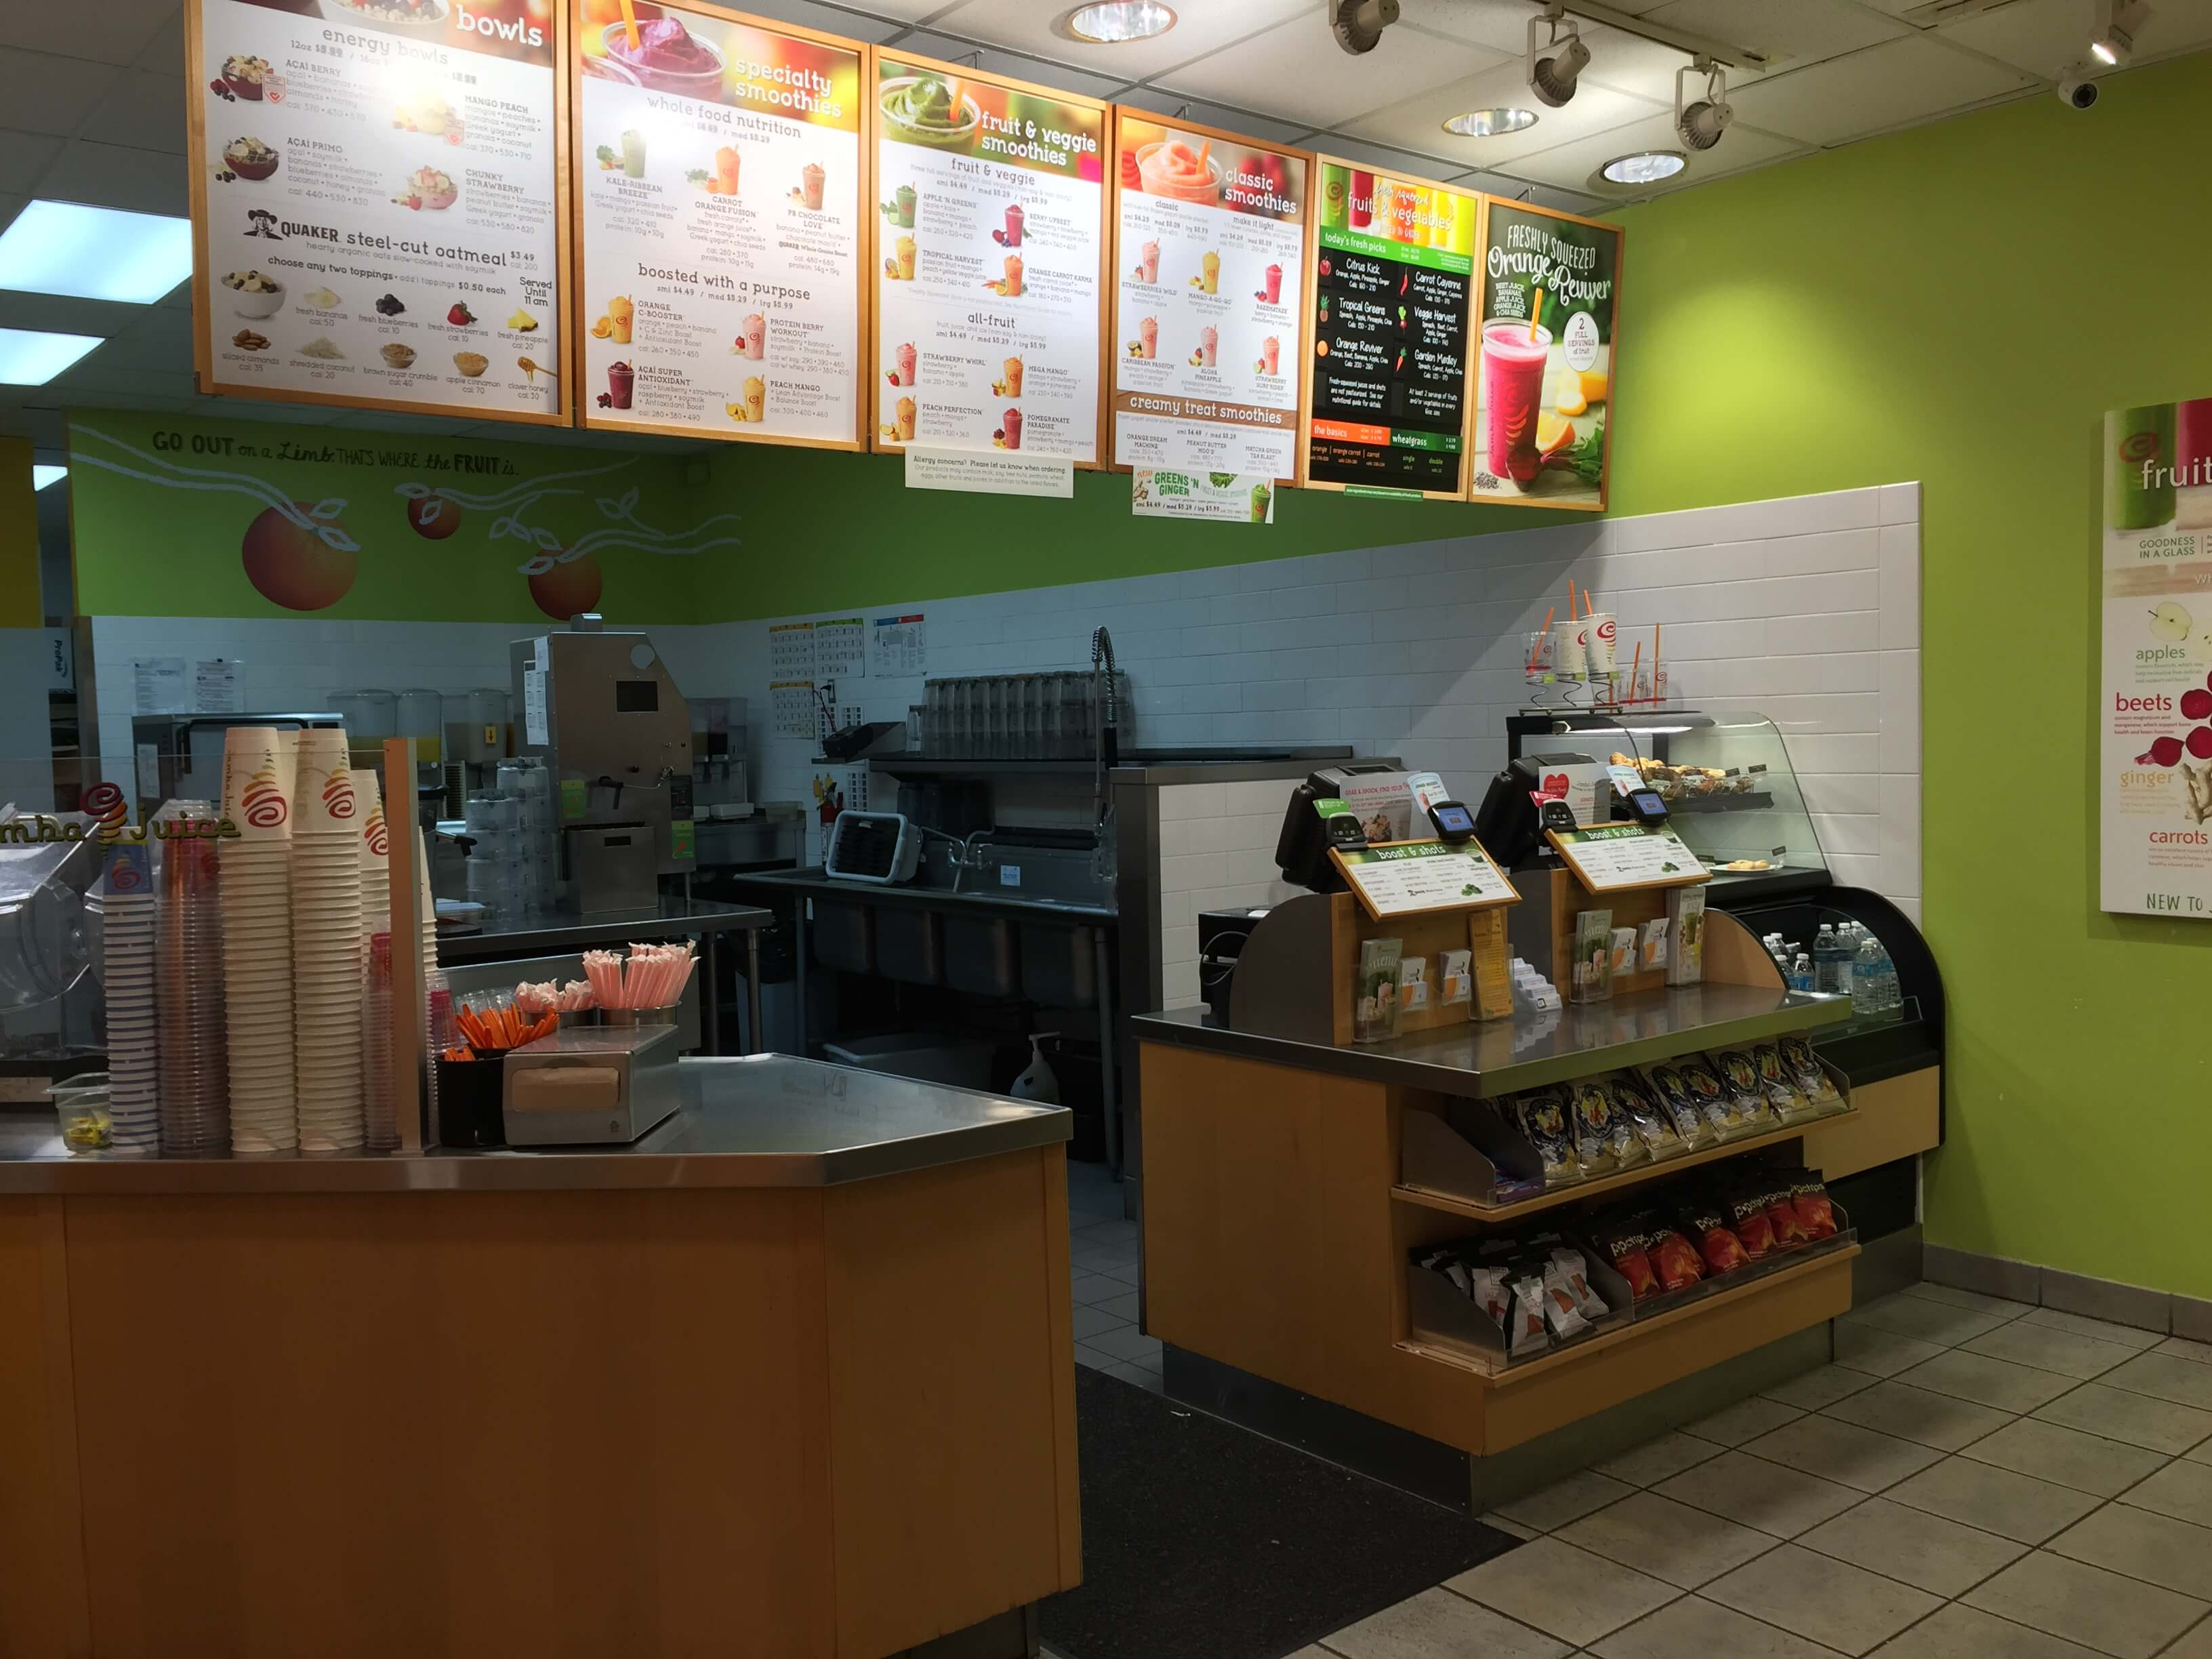 Read reviews from Jamba Juice at Nw 9th St in Corvallis from trusted Corvallis restaurant reviewers. Includes the menu, user reviews, photos, and 80 dishes from Jamba Juice. Read reviews from Jamba Juice at Nw 9th St in Corvallis from trusted Corvallis restaurant reviewers. Hours Contact Business. Owner Message. Do you.